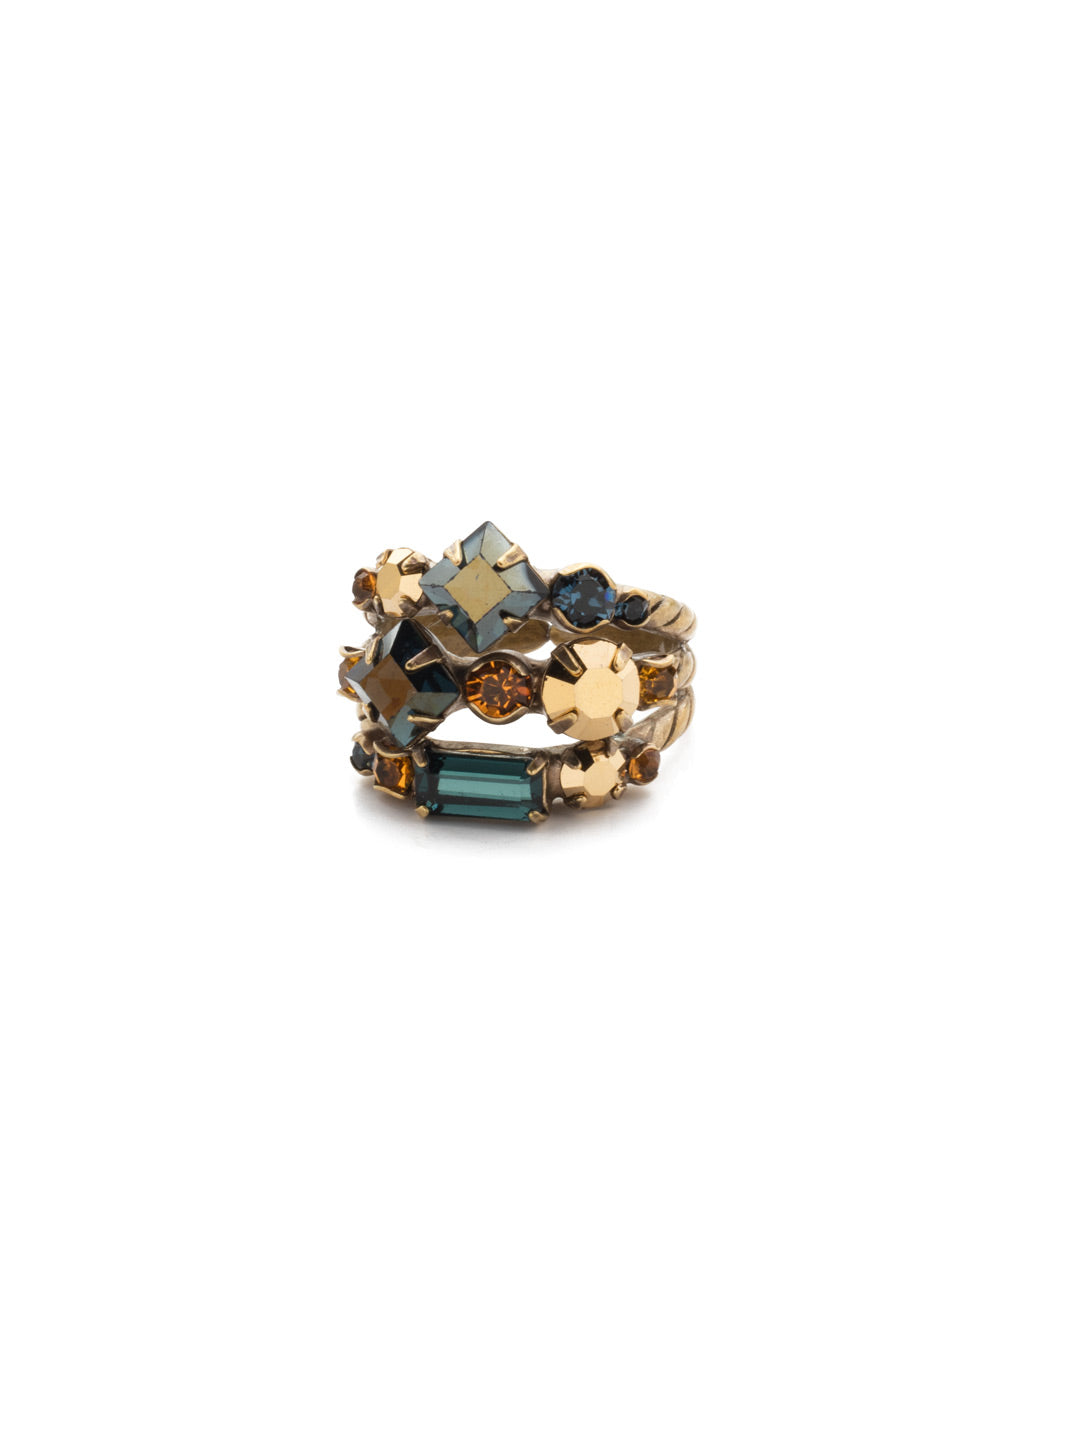 Sedge Stacked Stacked Ring - RDX1AGLNA